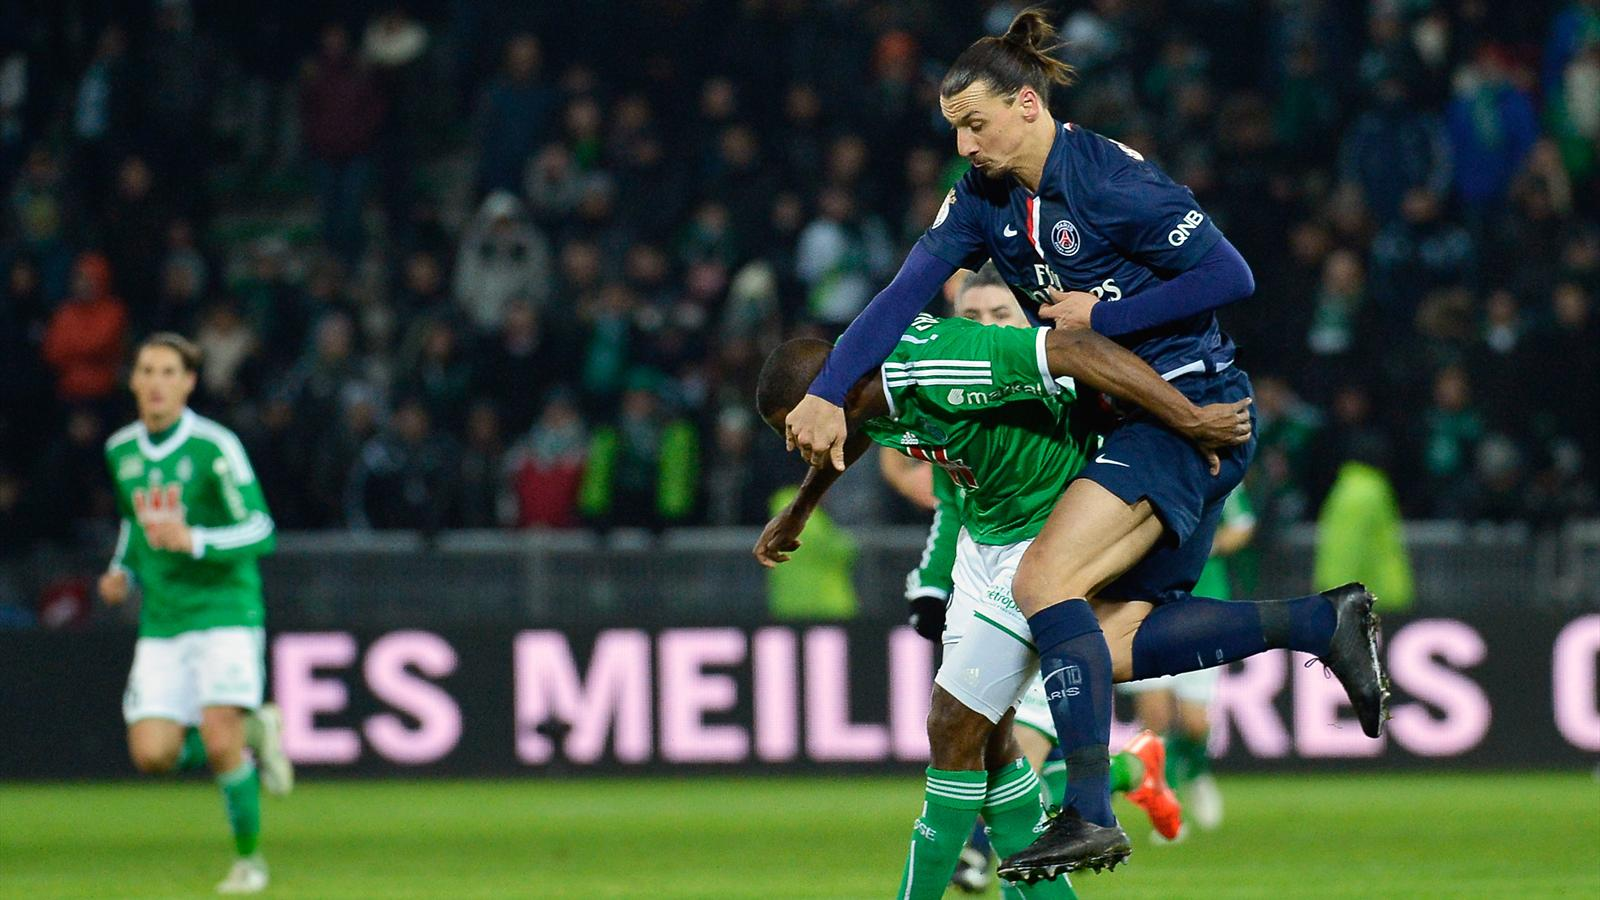 Video: Saint-Étienne vs PSG